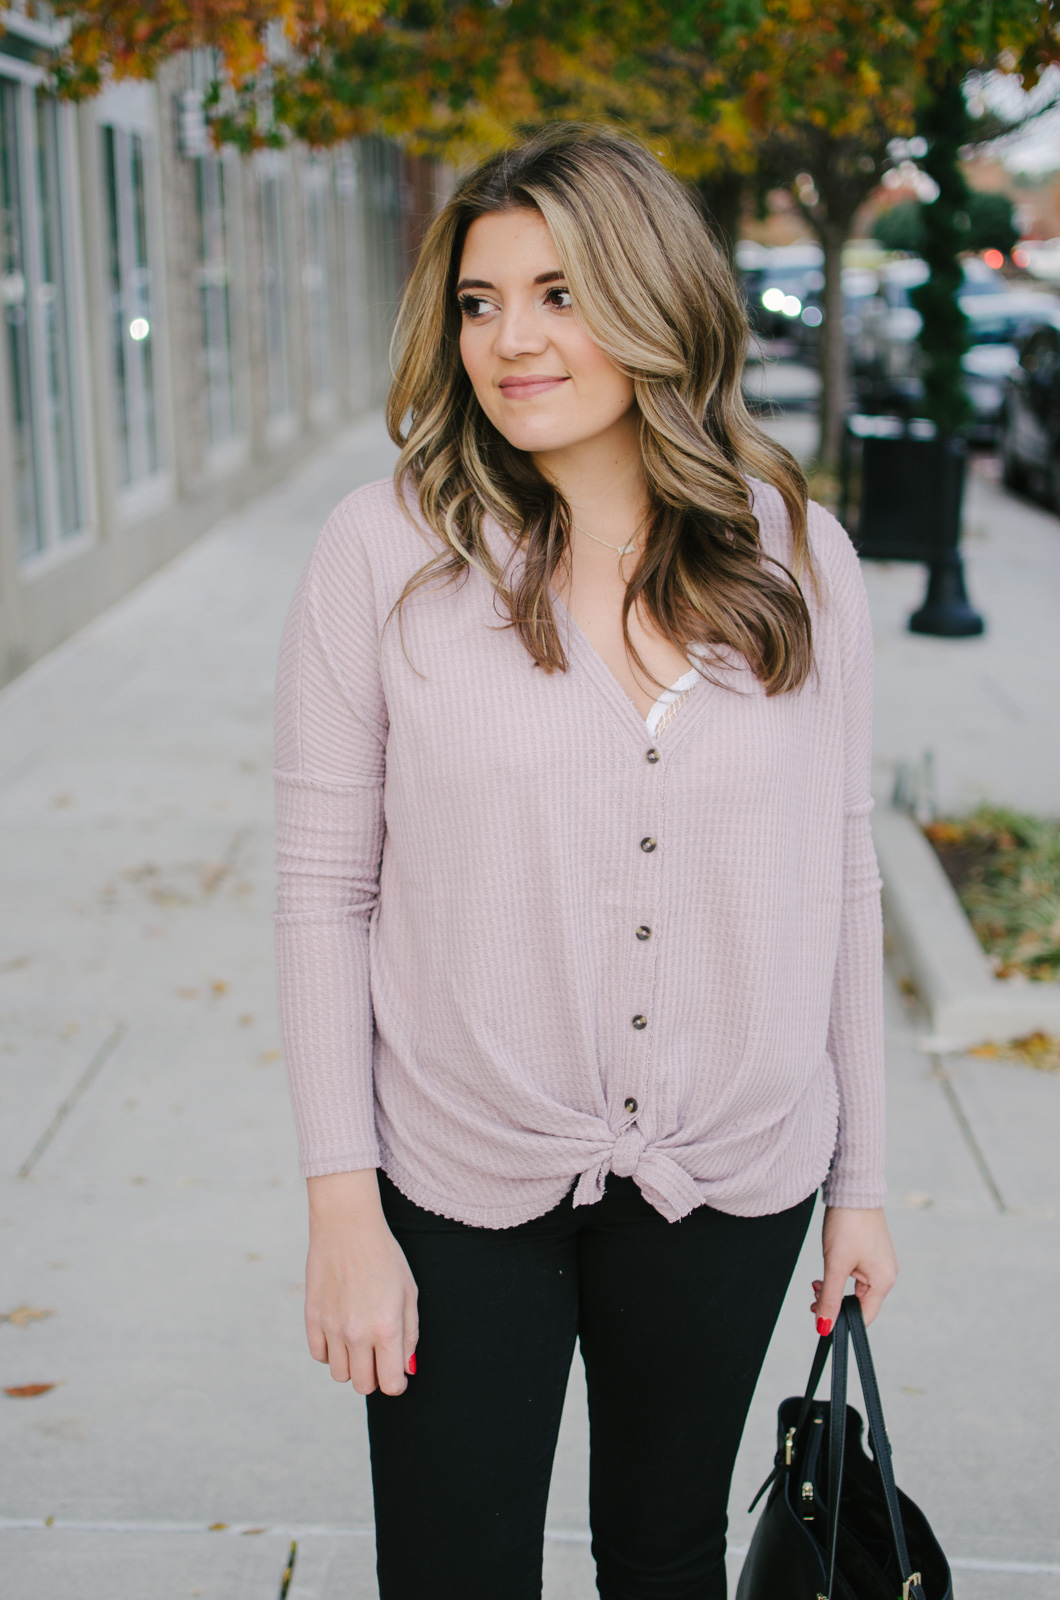 thermal top outfit - this tie thermal is adorable and so comfy! | See more Winter outfit ideas or get outfit details by clicking through to bylaurenm.com!